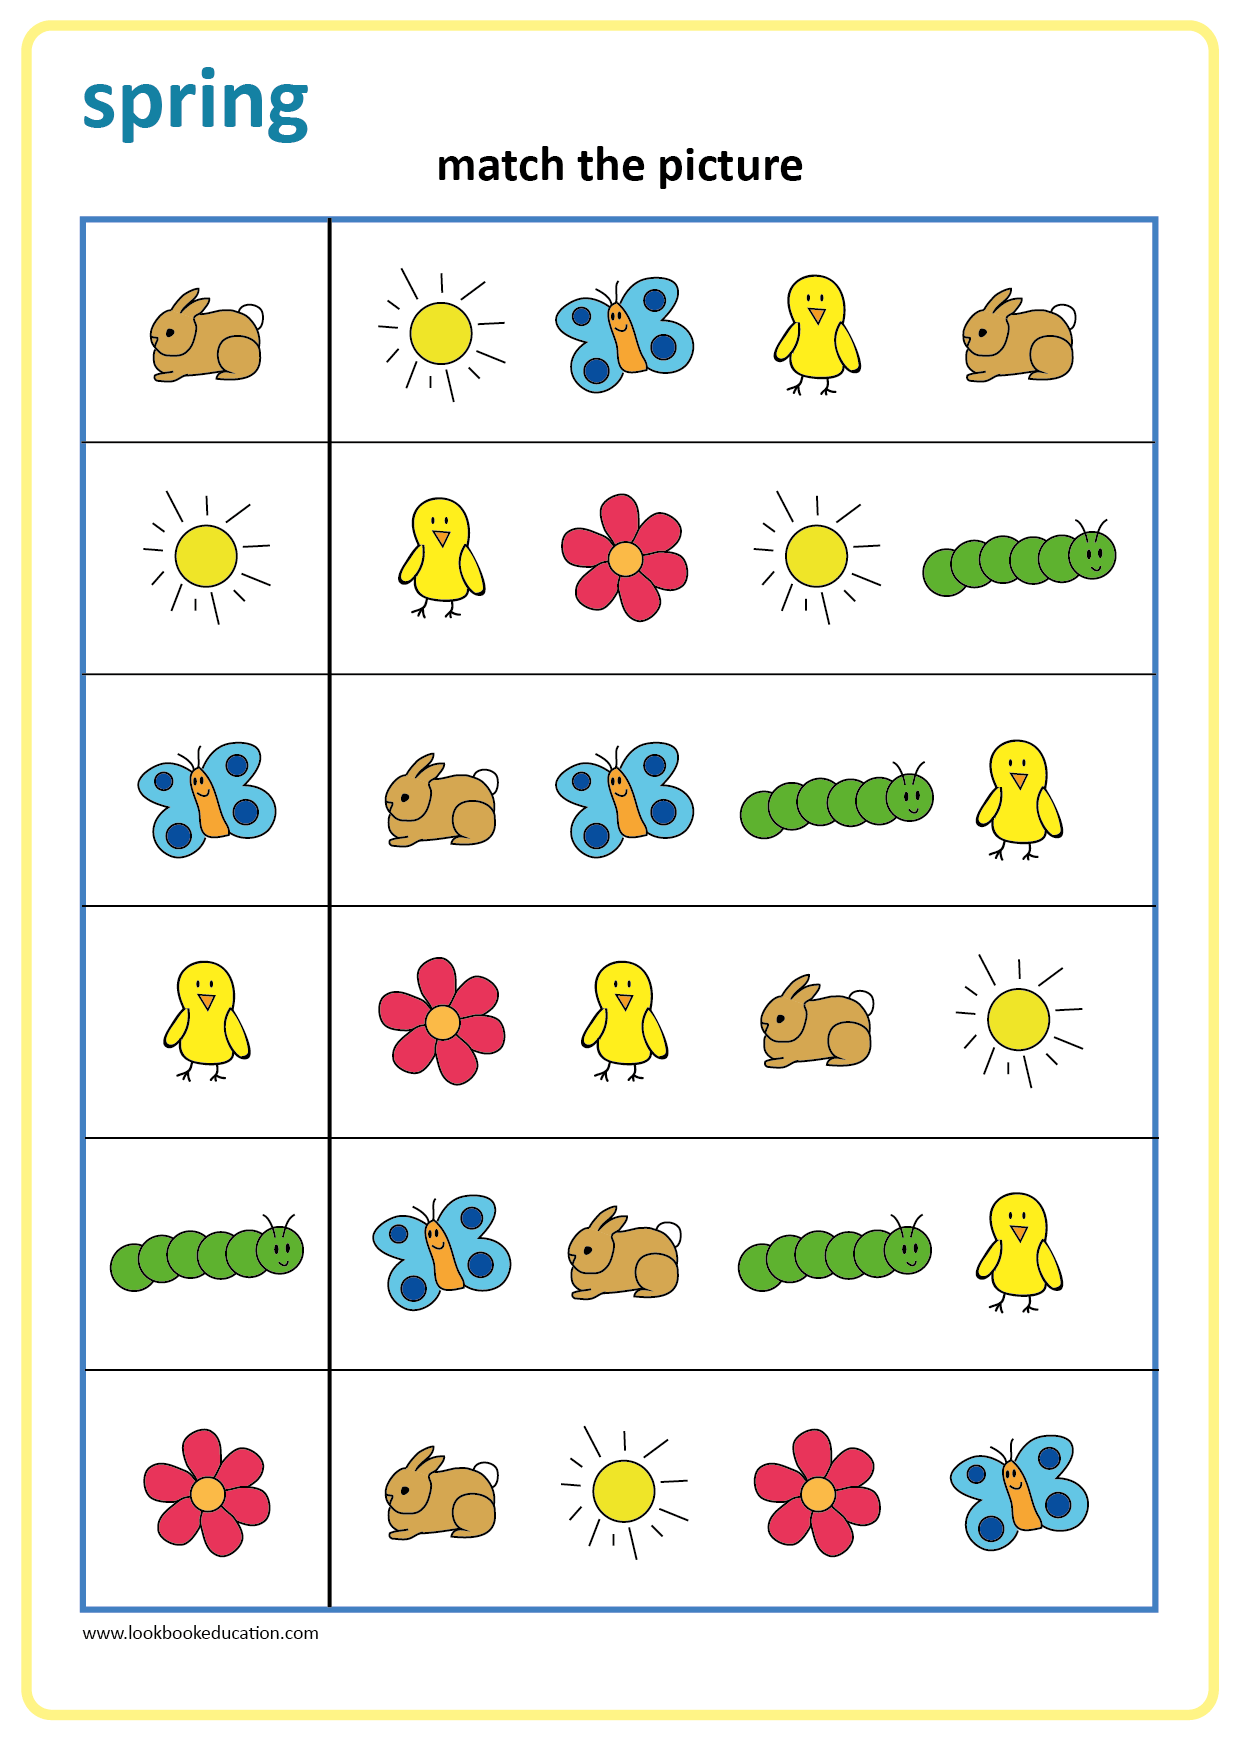 Worksheet Matching Spring